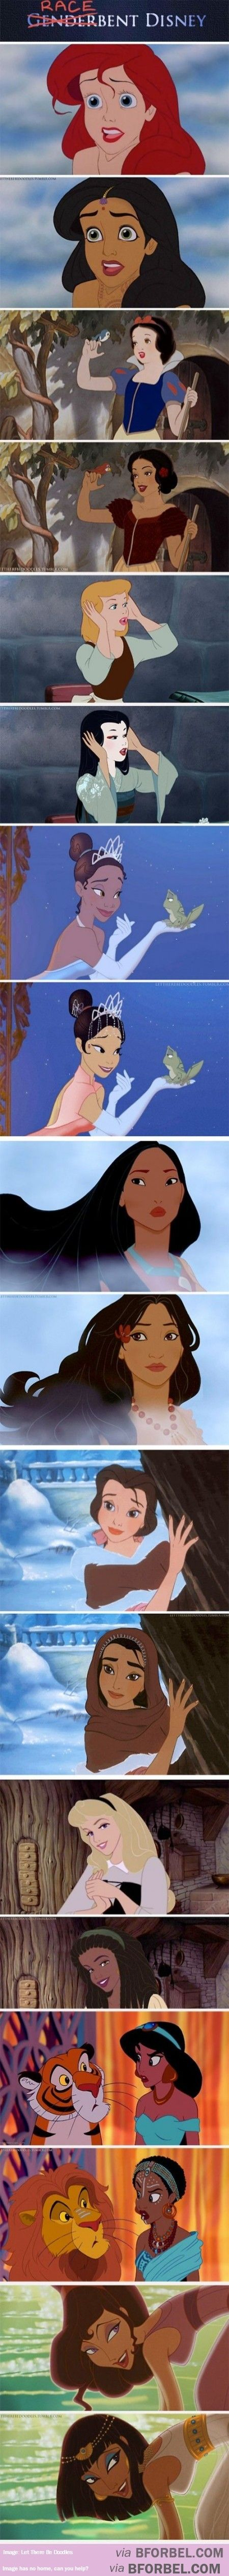 9 Disney Princesses Now Of Different Colors…